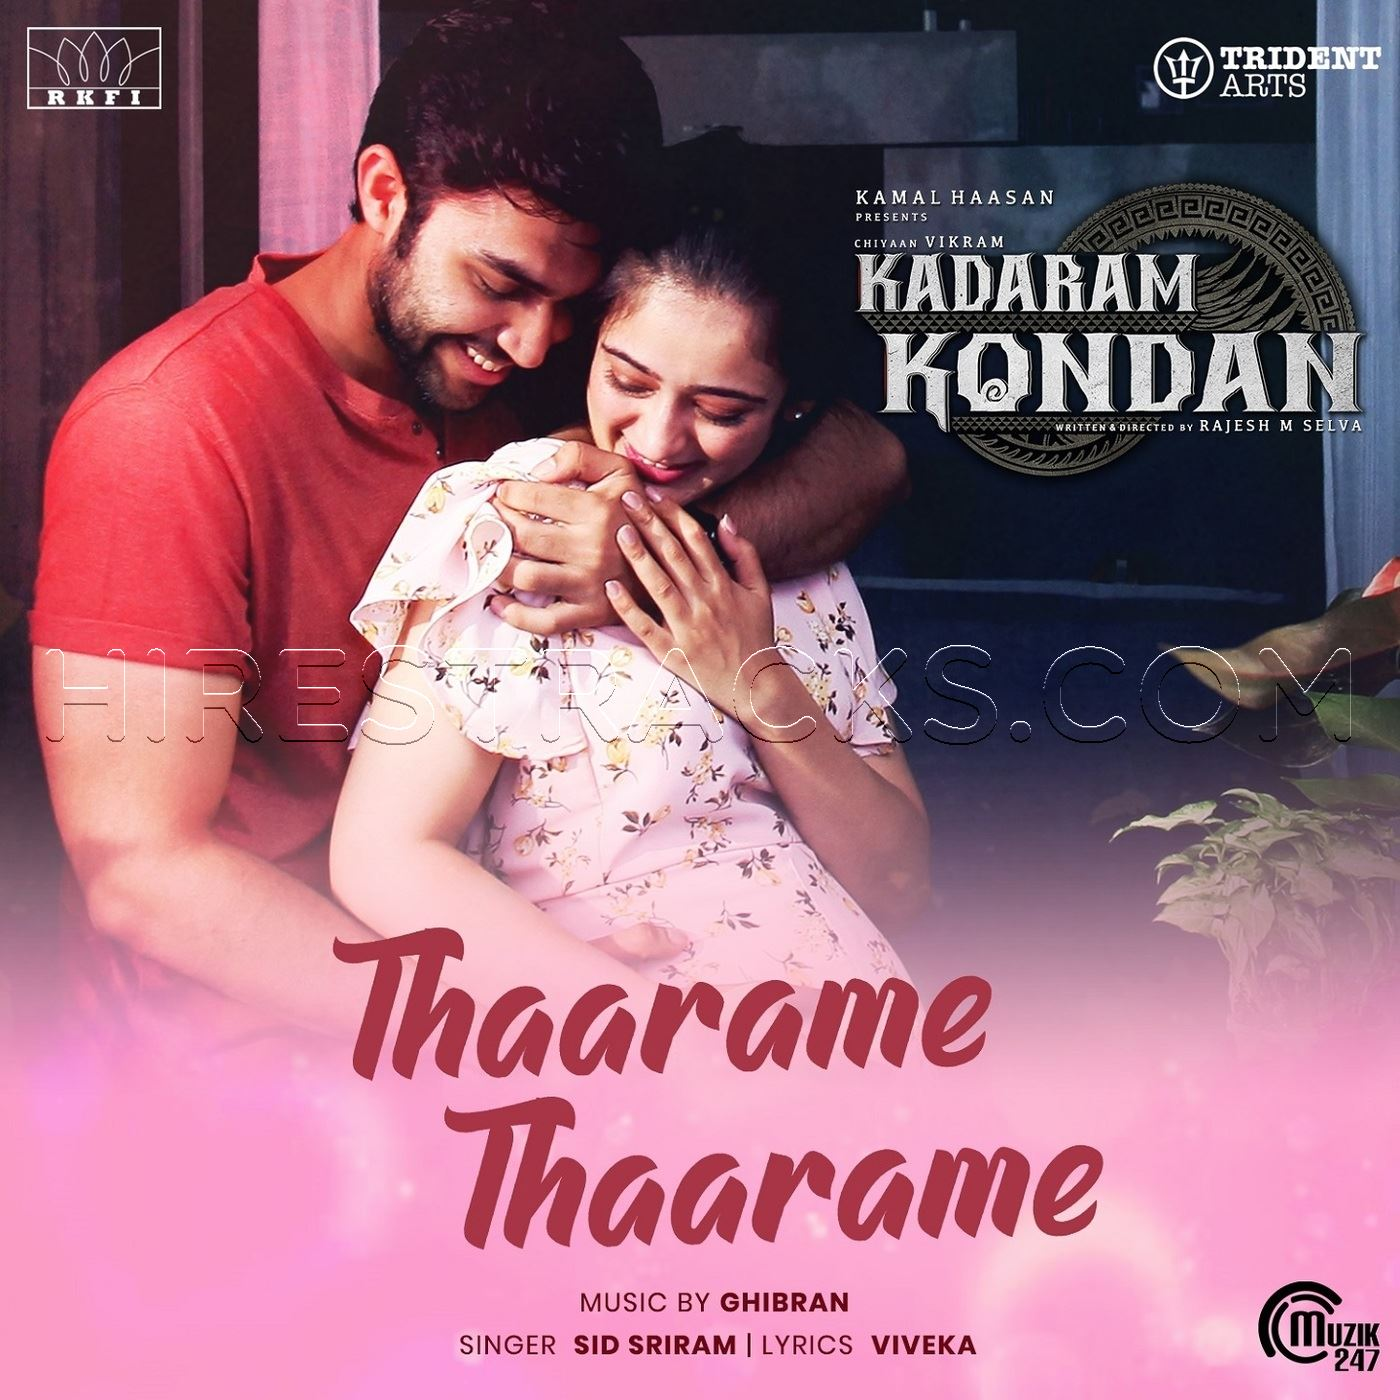 Thaarame Thaarame – Single (From Kadaram Kondan) (2019) (Ghibran)